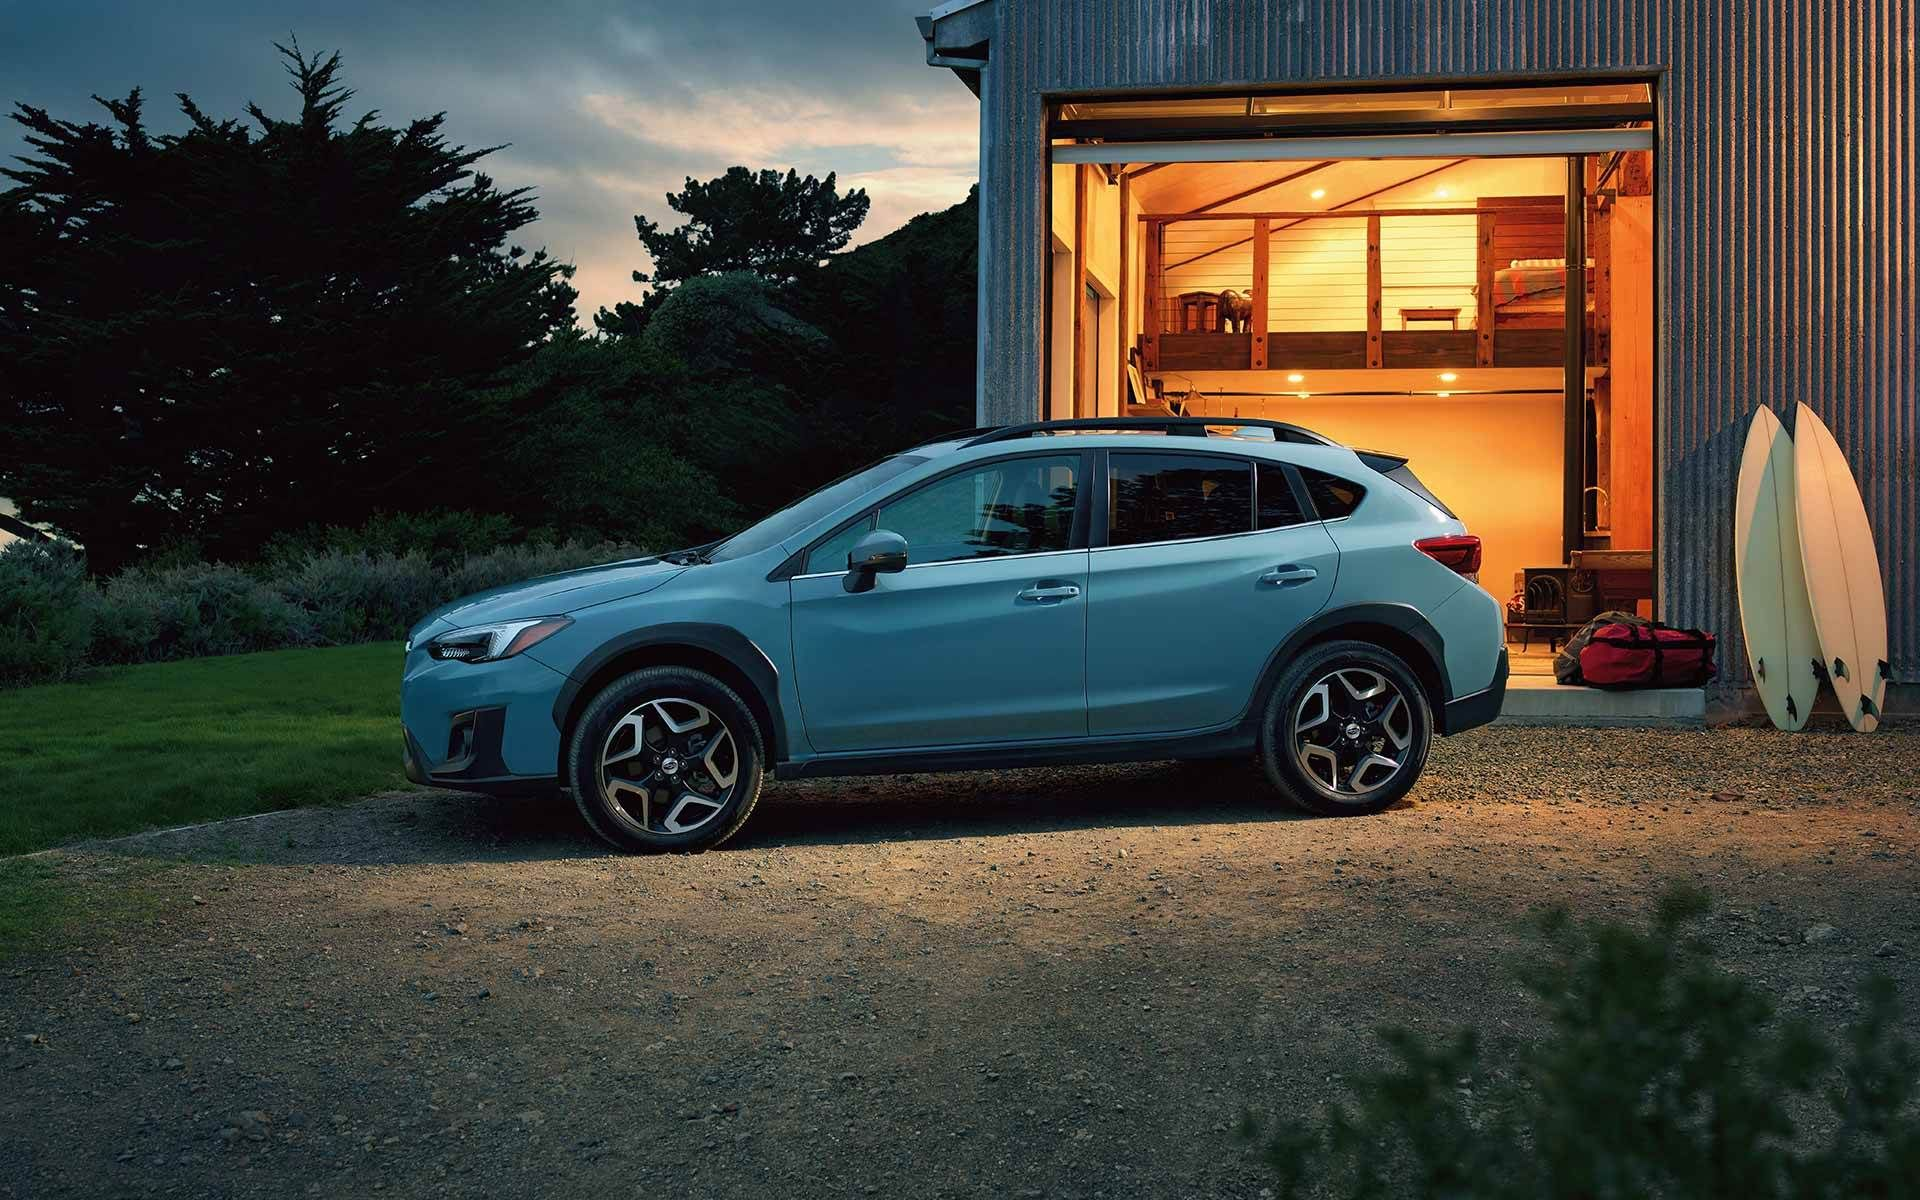 d6bc74c00cc832e60e87cb92eb964e5a Great Description About 2016 Crosstrek Turbo